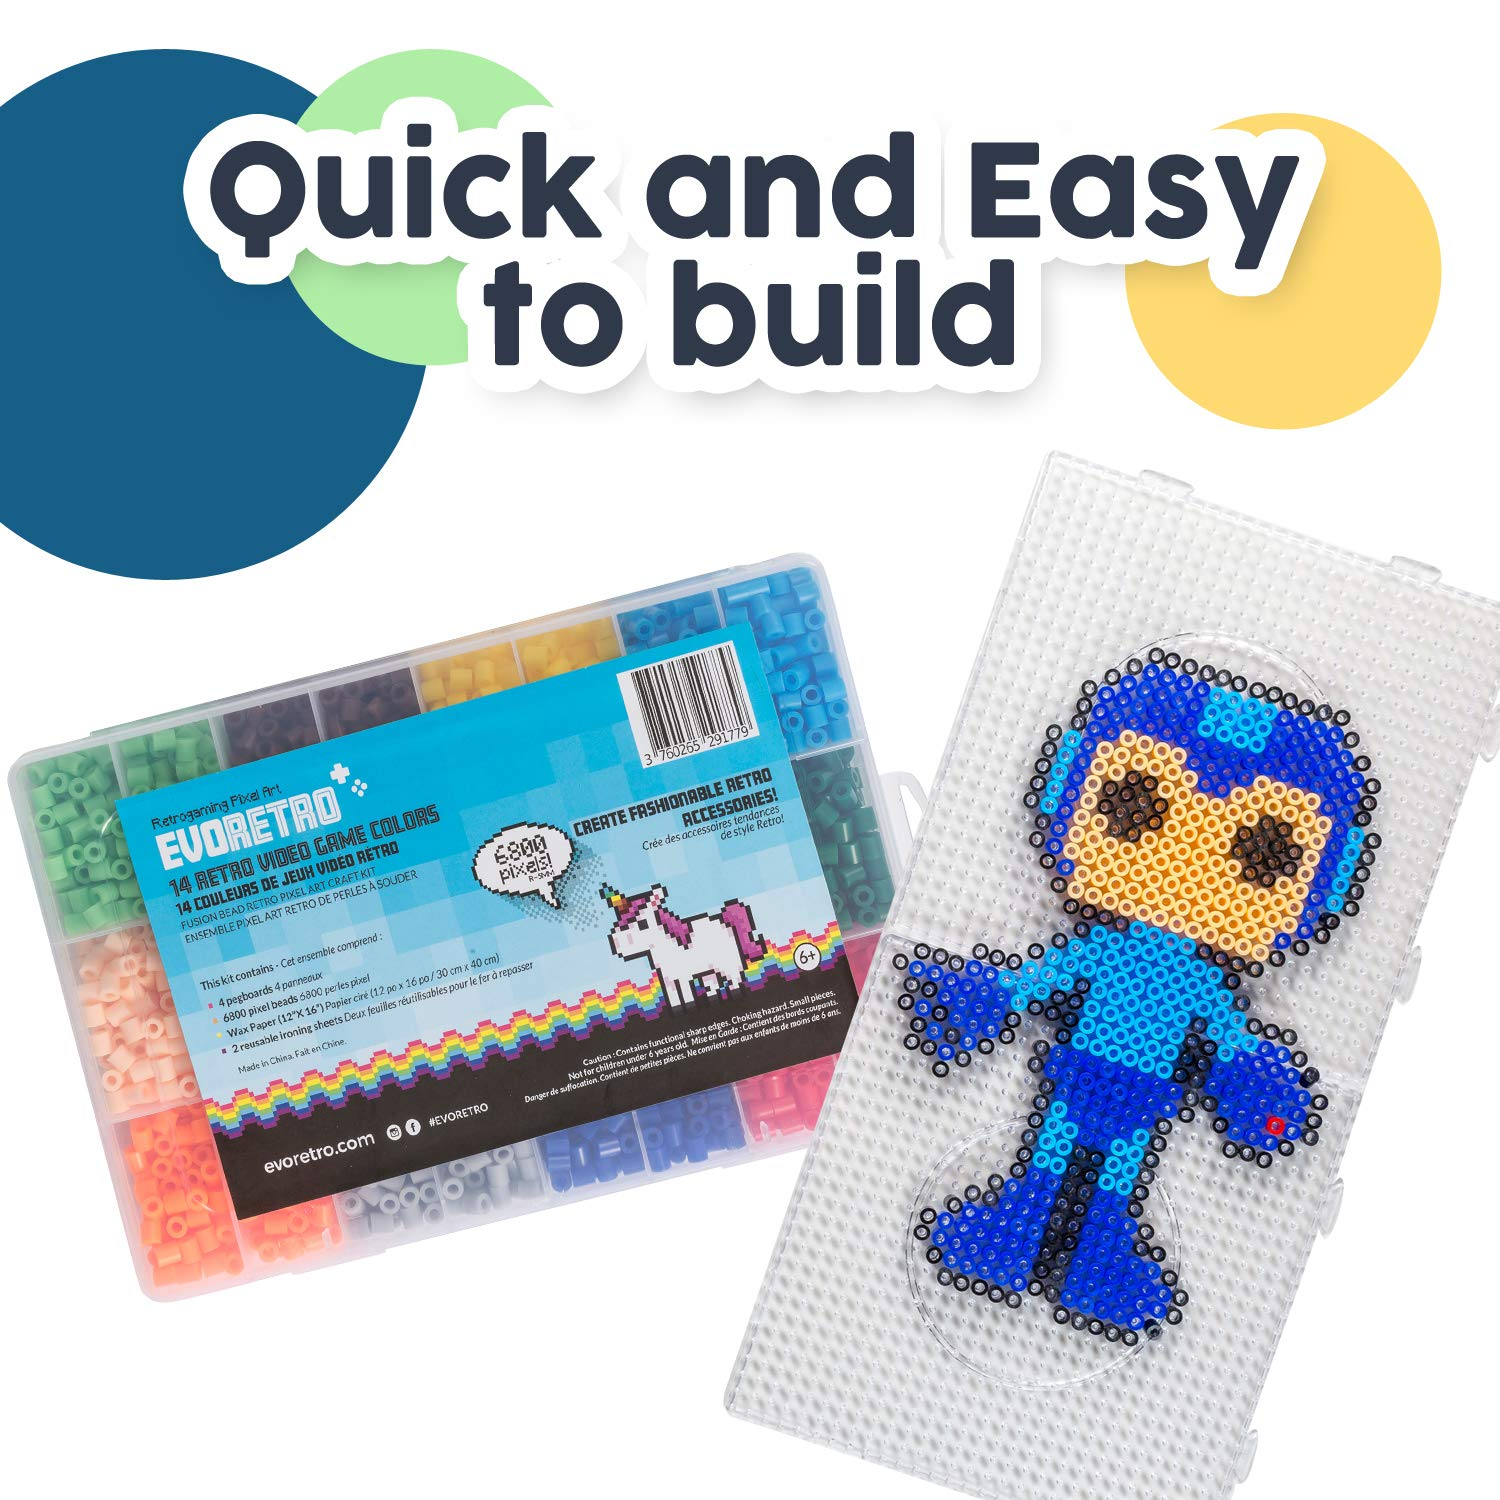 Retro Video Games Characters Fuse Beads Kits With Peg Boards By Evoretro Large Kit Designs Fashion